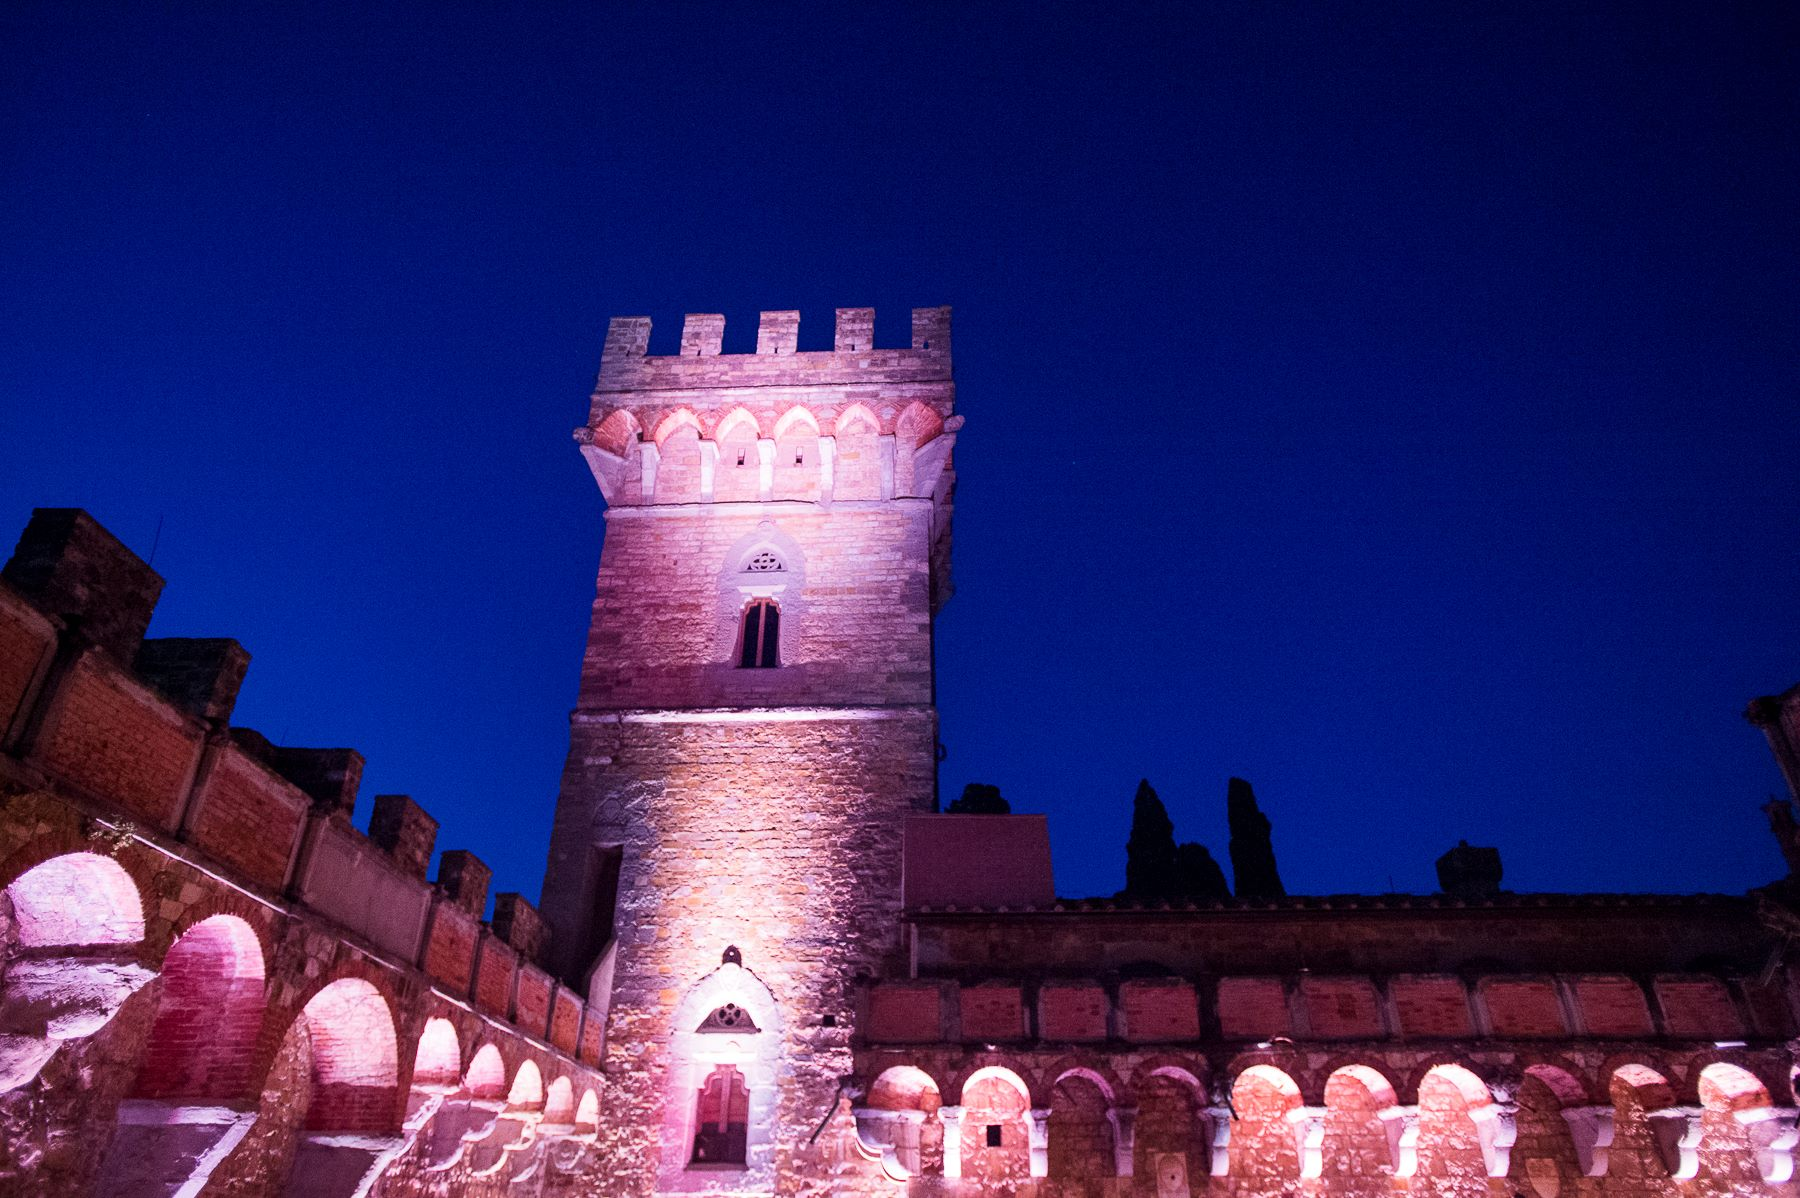 Wedding in a Tuscan castle: your fairytale Day!